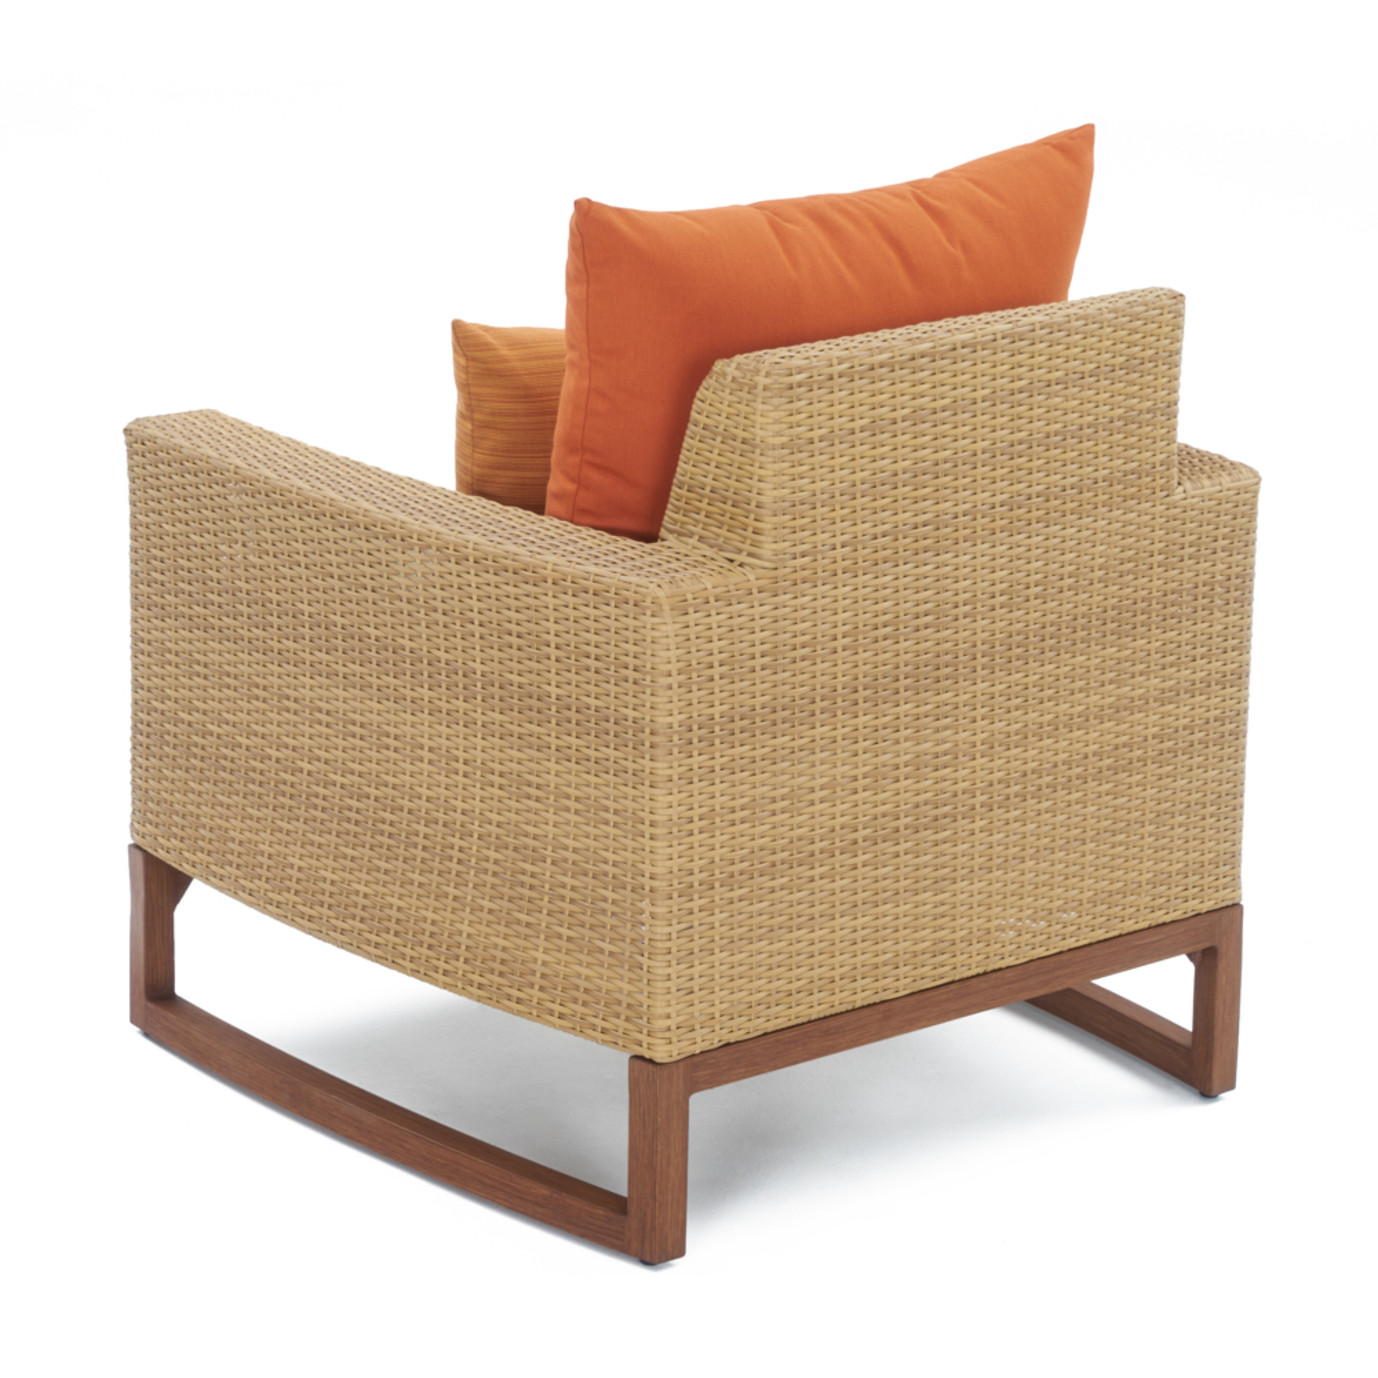 Mili™ 4 Piece Seating Set - Tikka Orange